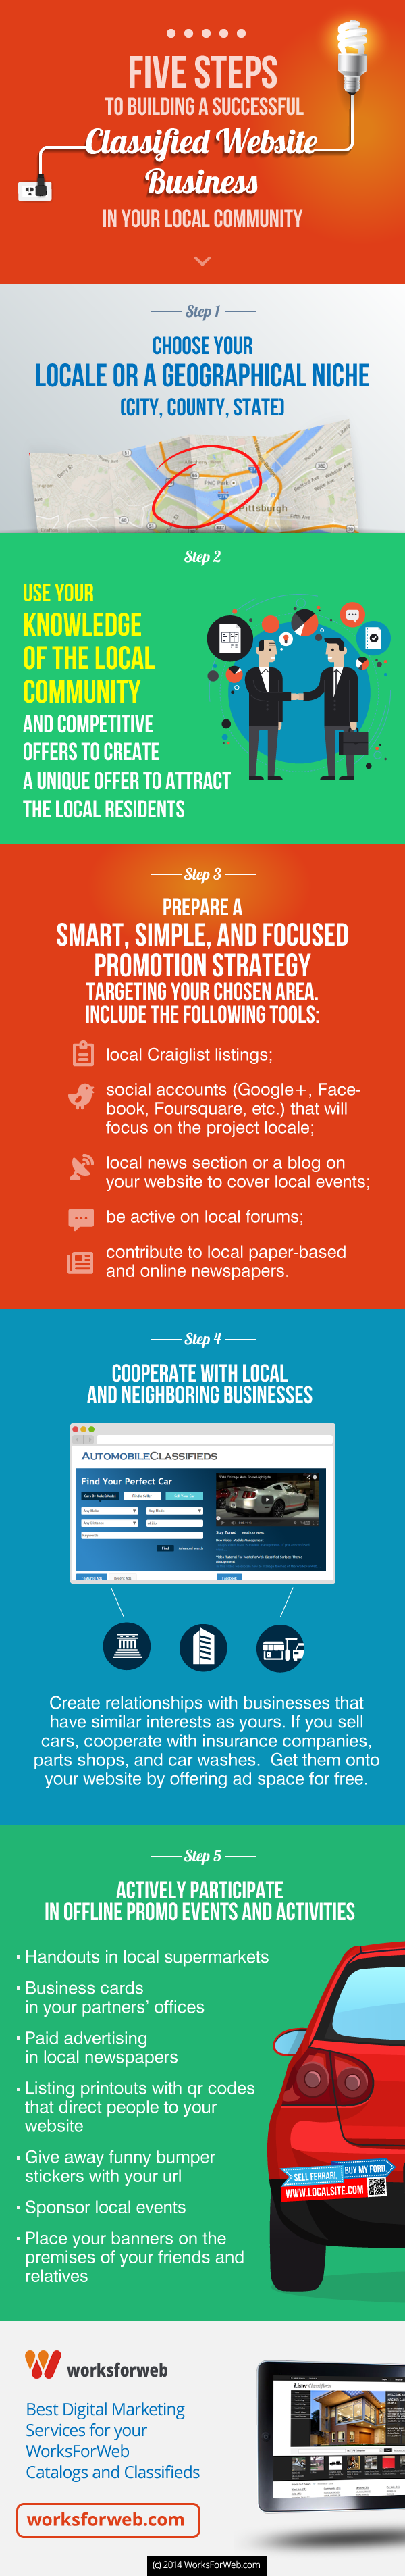 Five Steps to Building a Successful Classified Website Business in Your Local Community